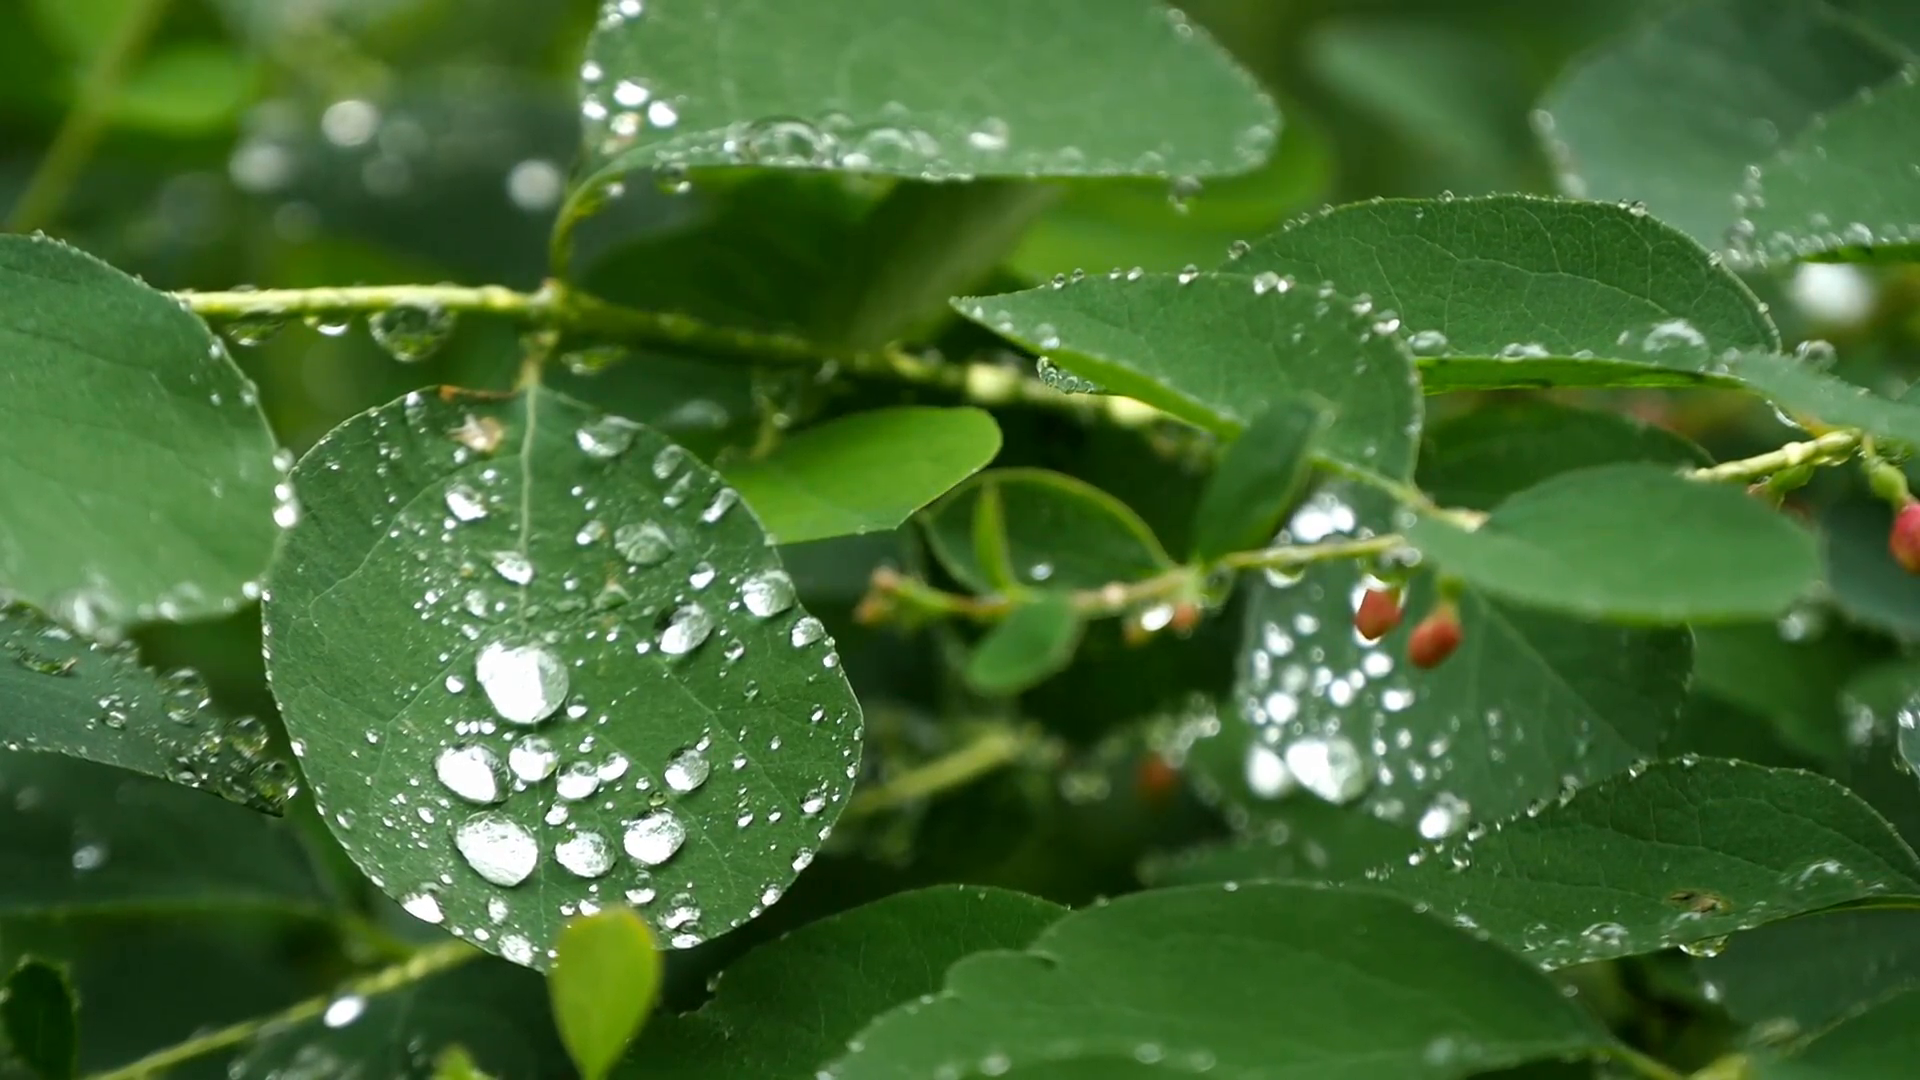 Rainy day, raindrops falling on the leaves. Extreme close up shot of ...